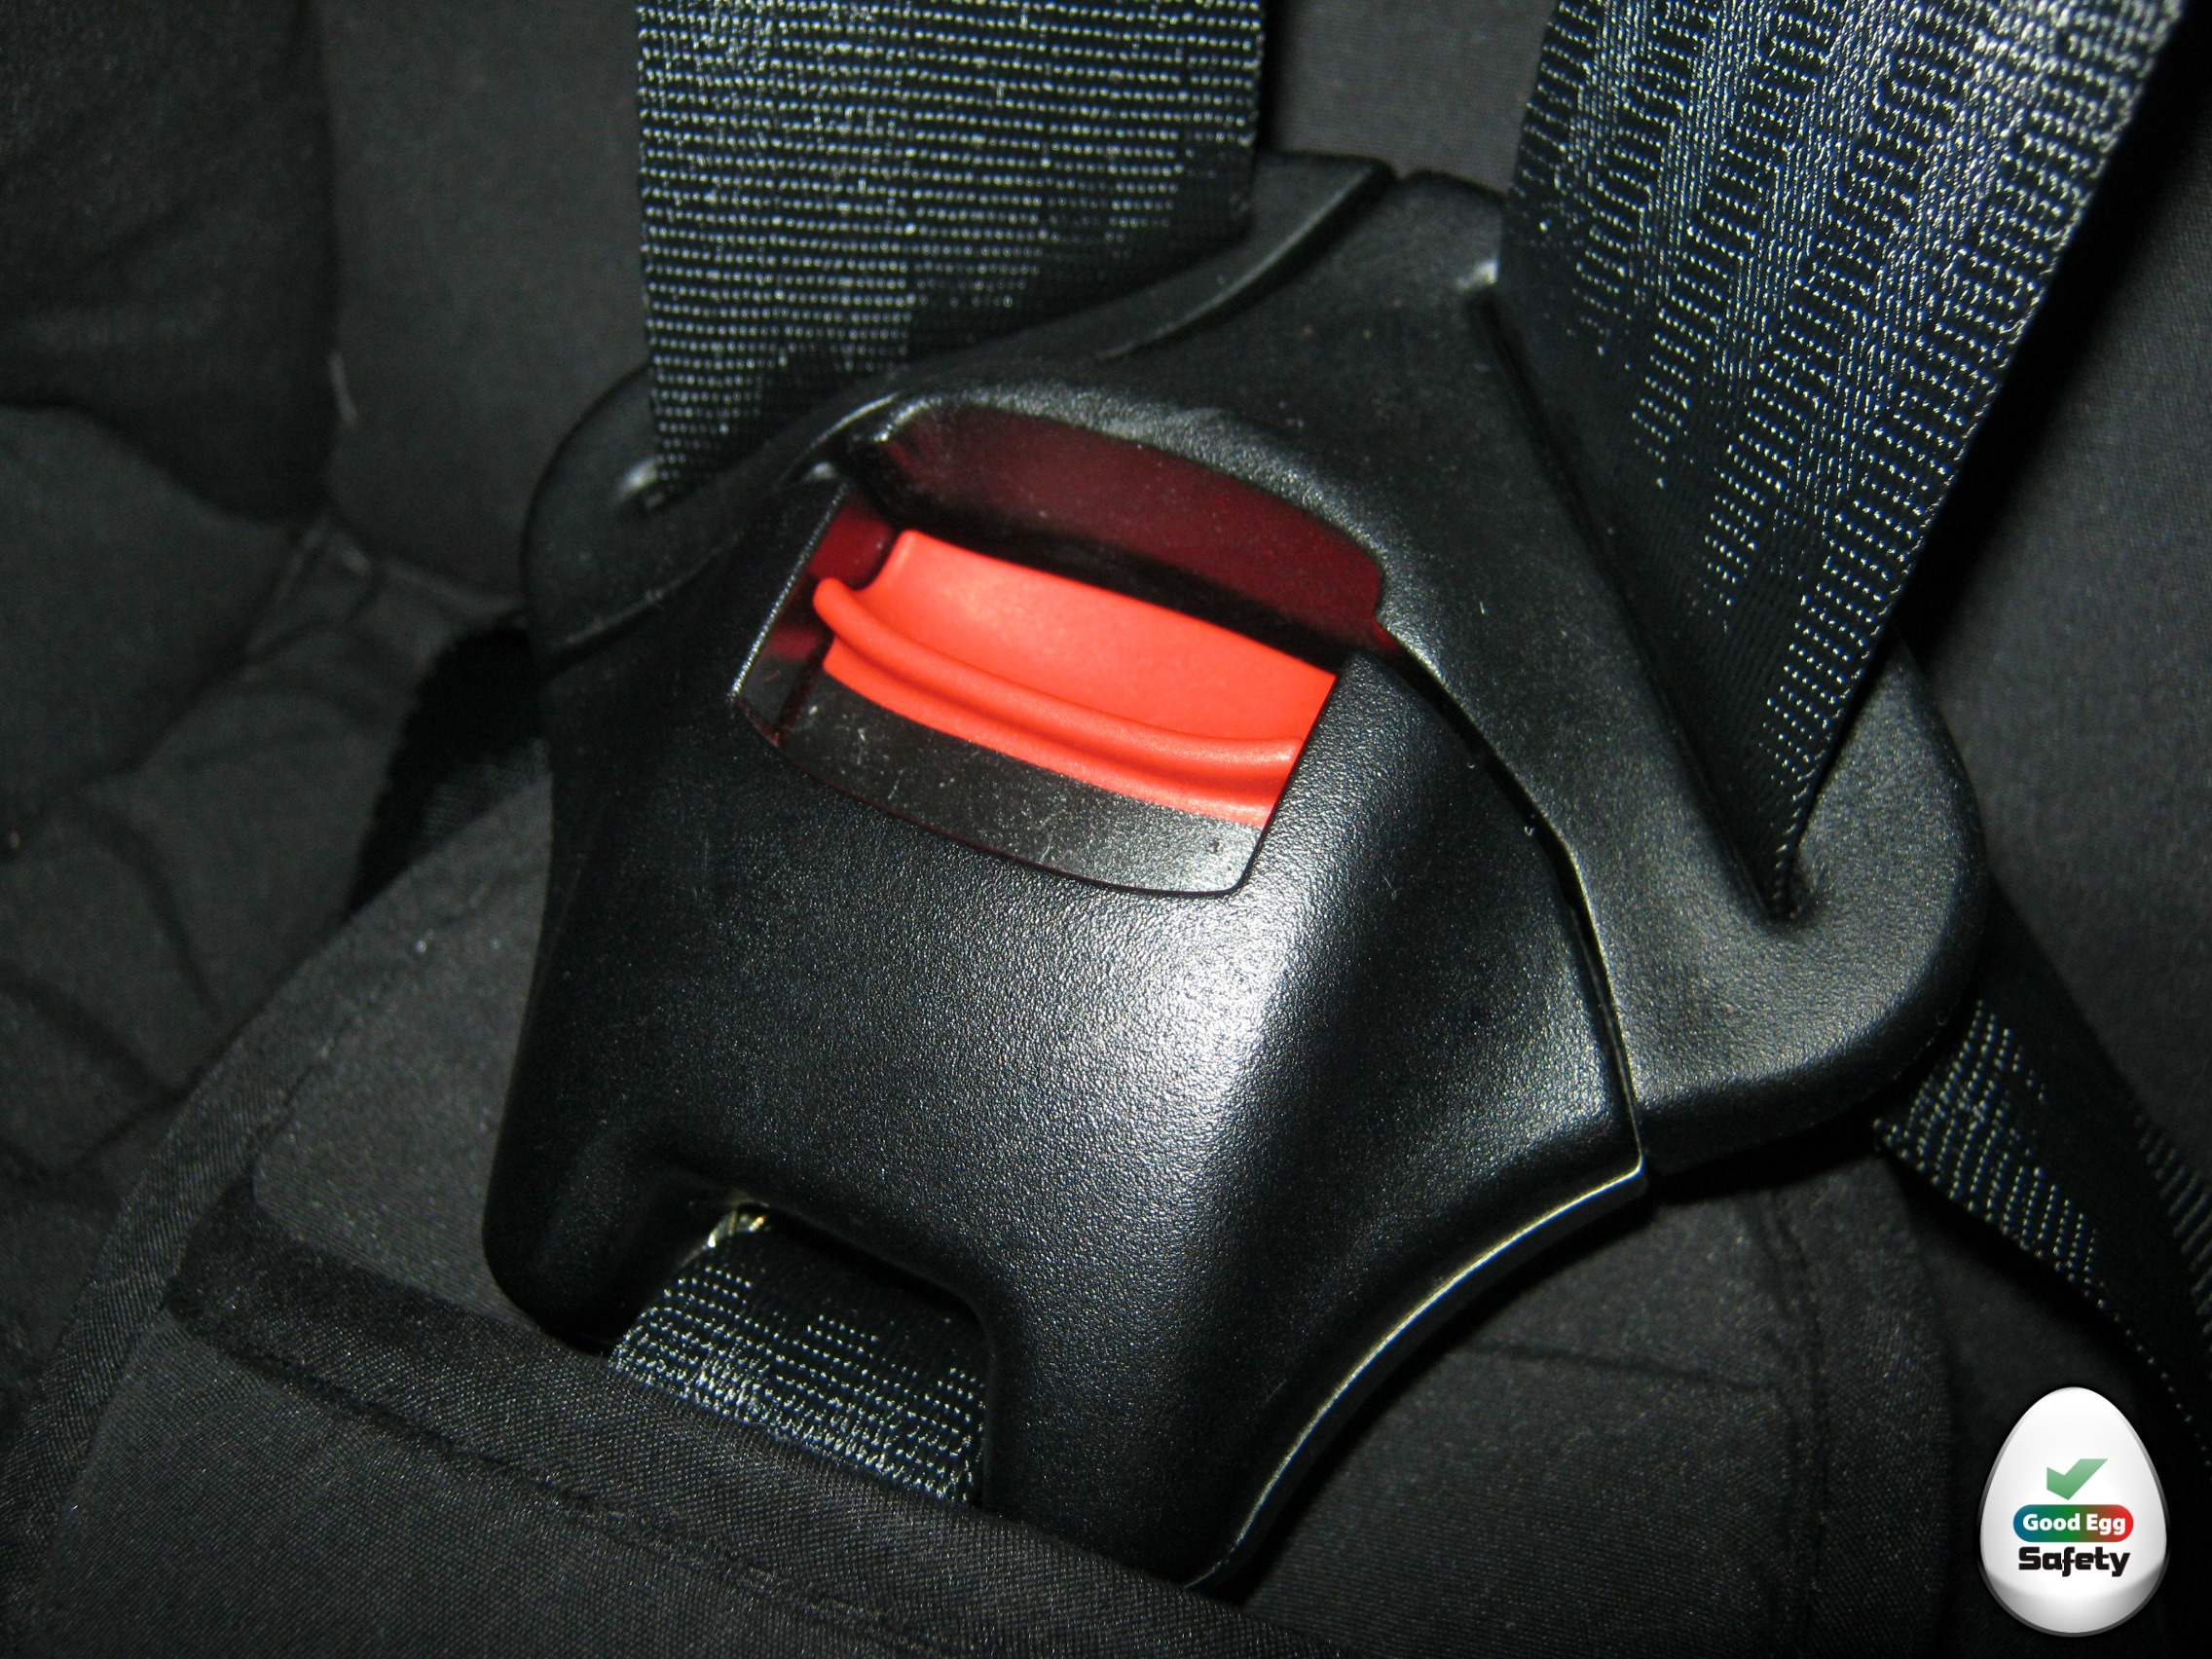 BUCKLE Overlay Clothing In The Car Seat